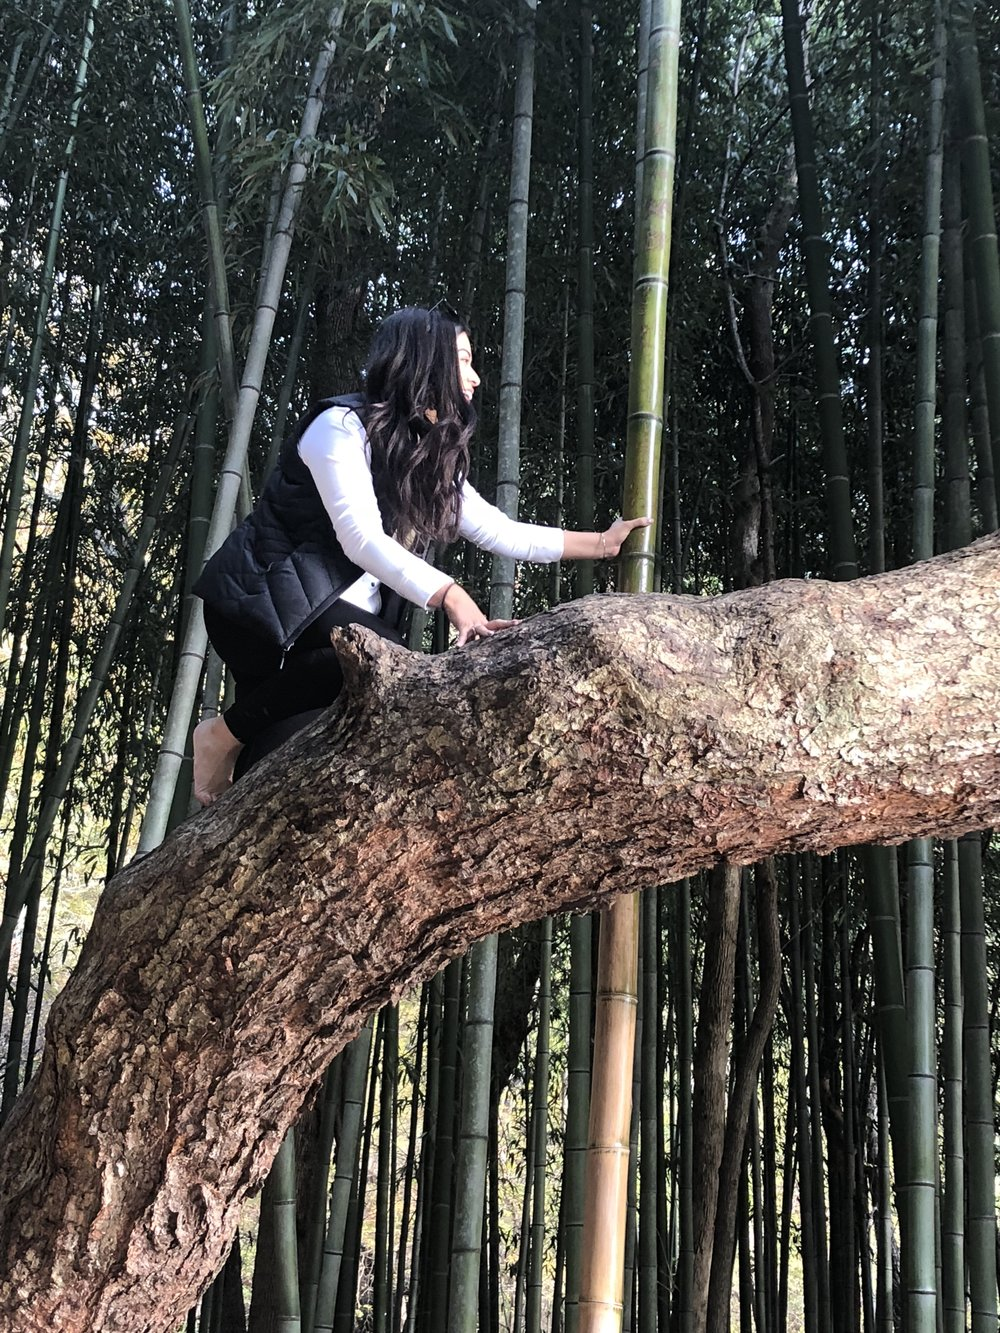 Climbing a tree….for a good picture in the bamboo forrest